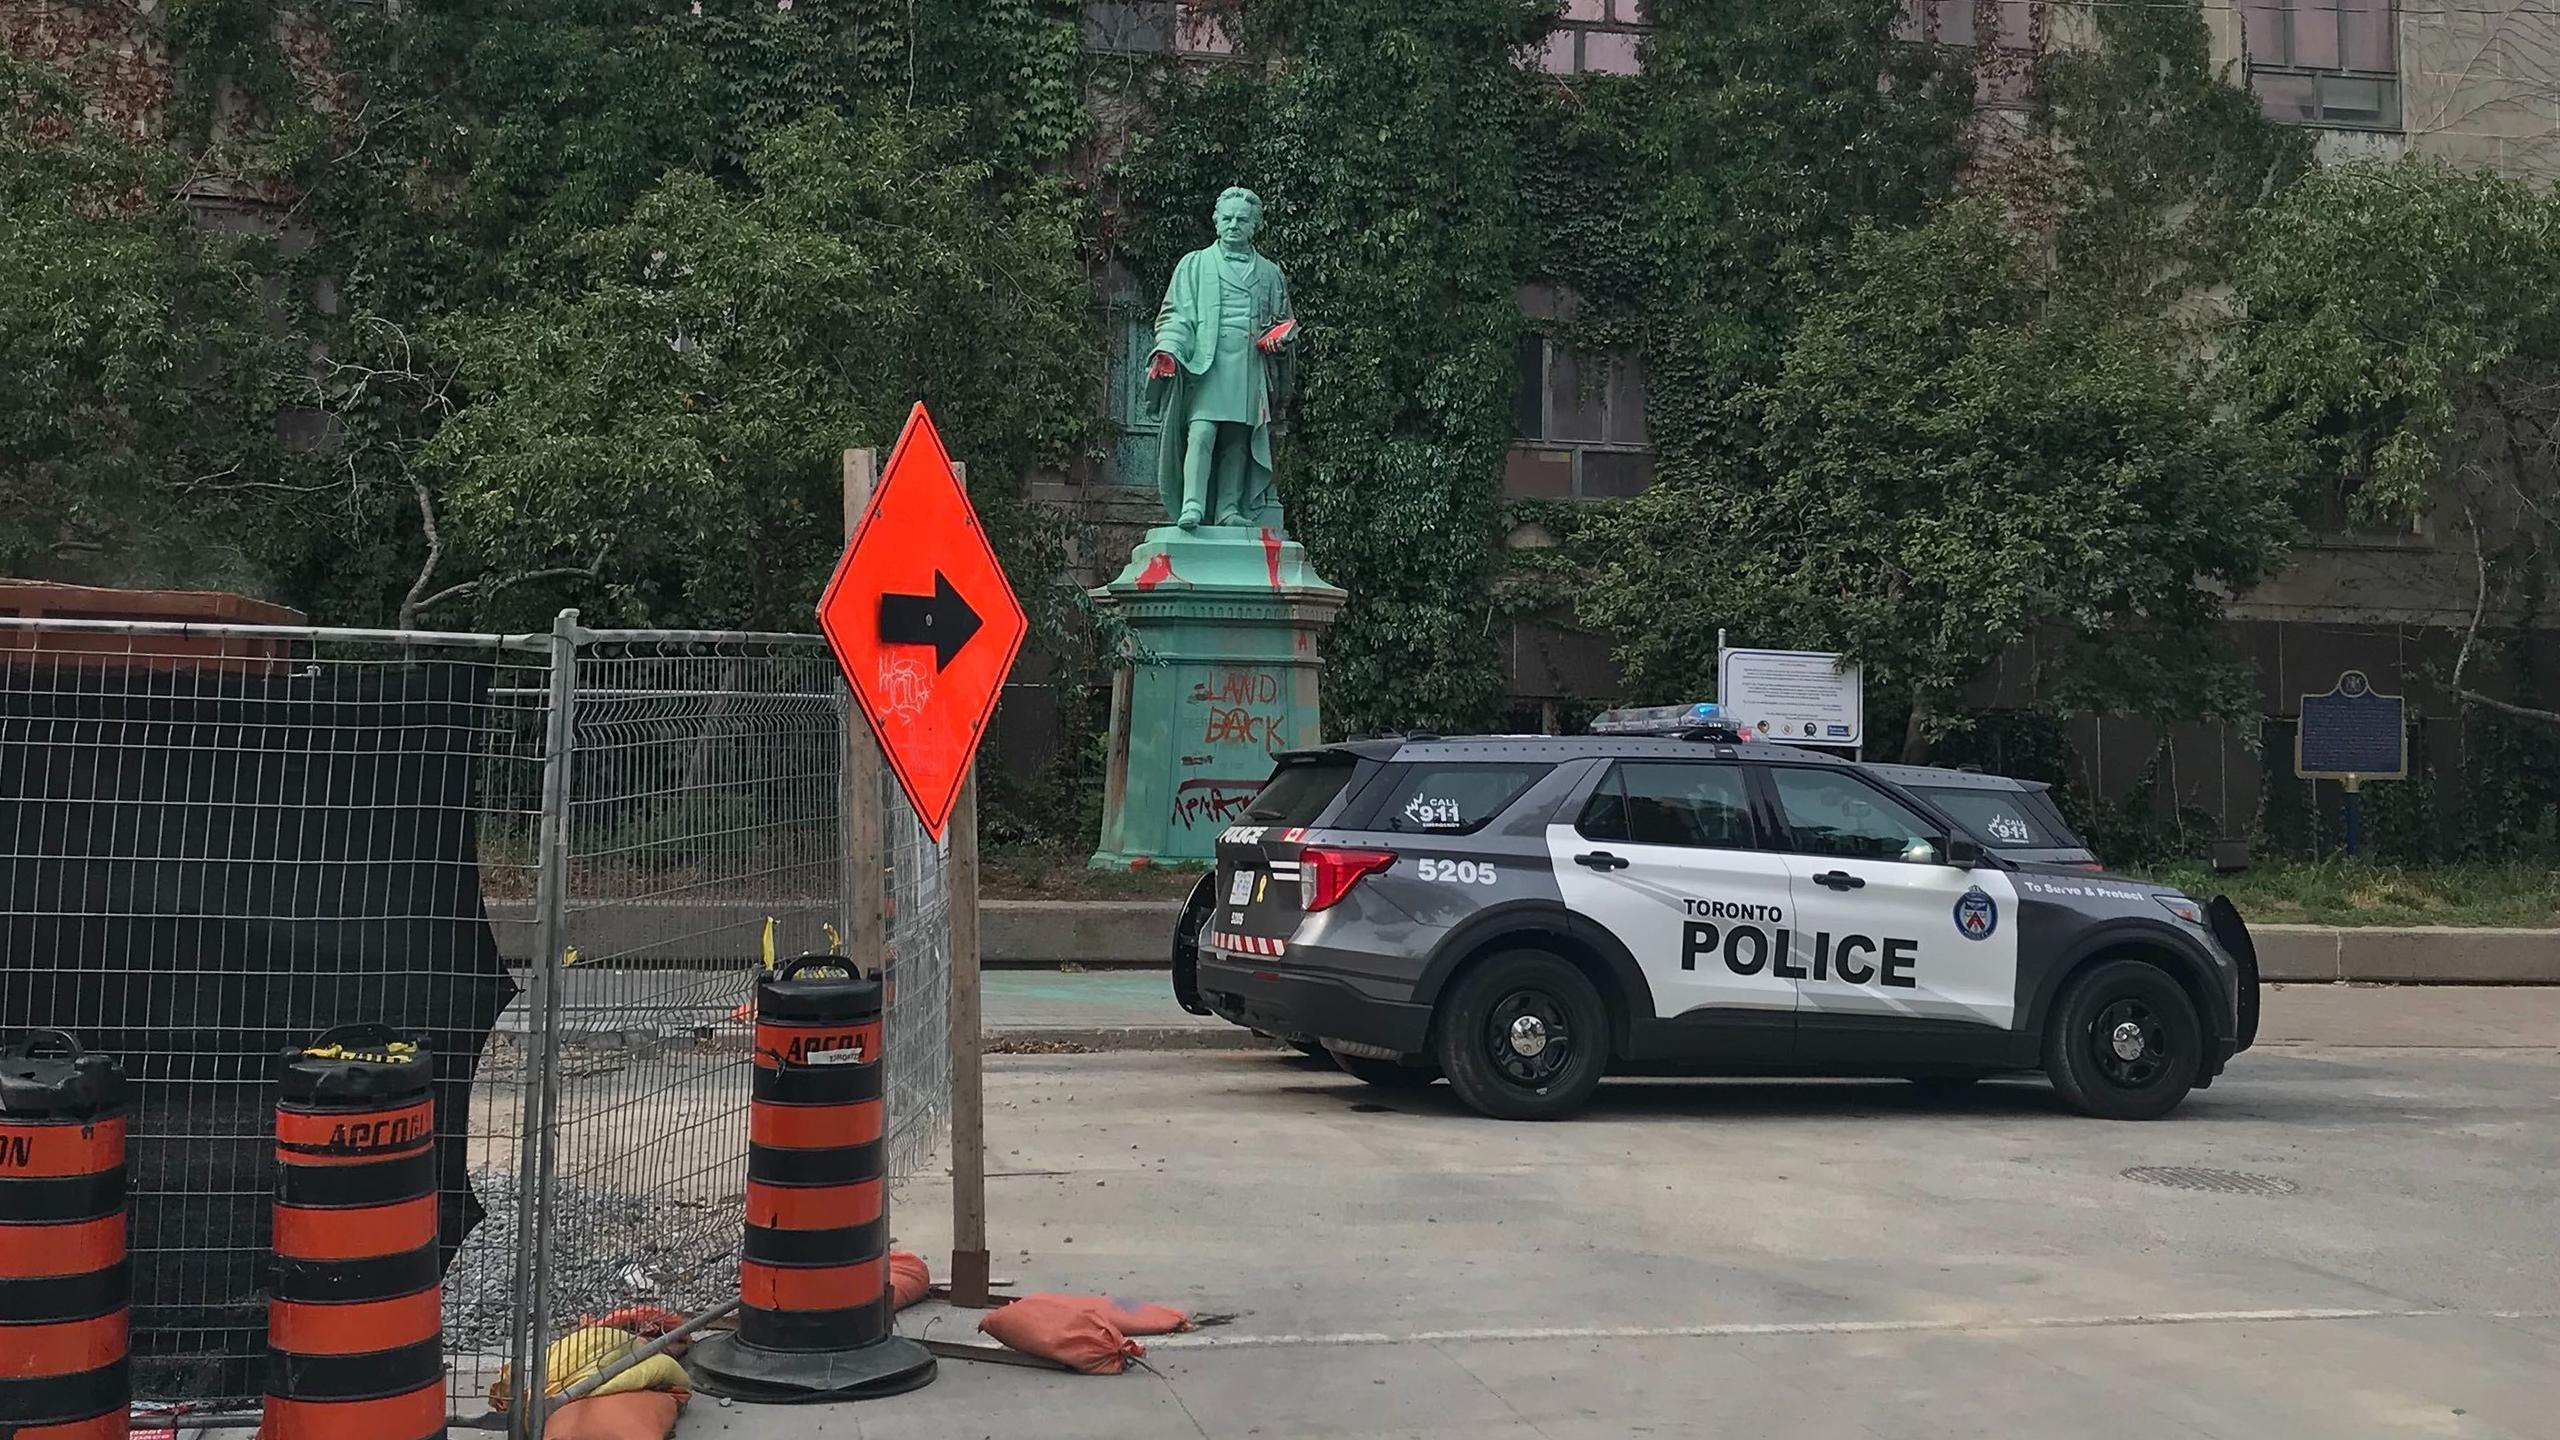 Photo of a Toronto Police car in front of the Egerton Ryerson statue of Gould Street.